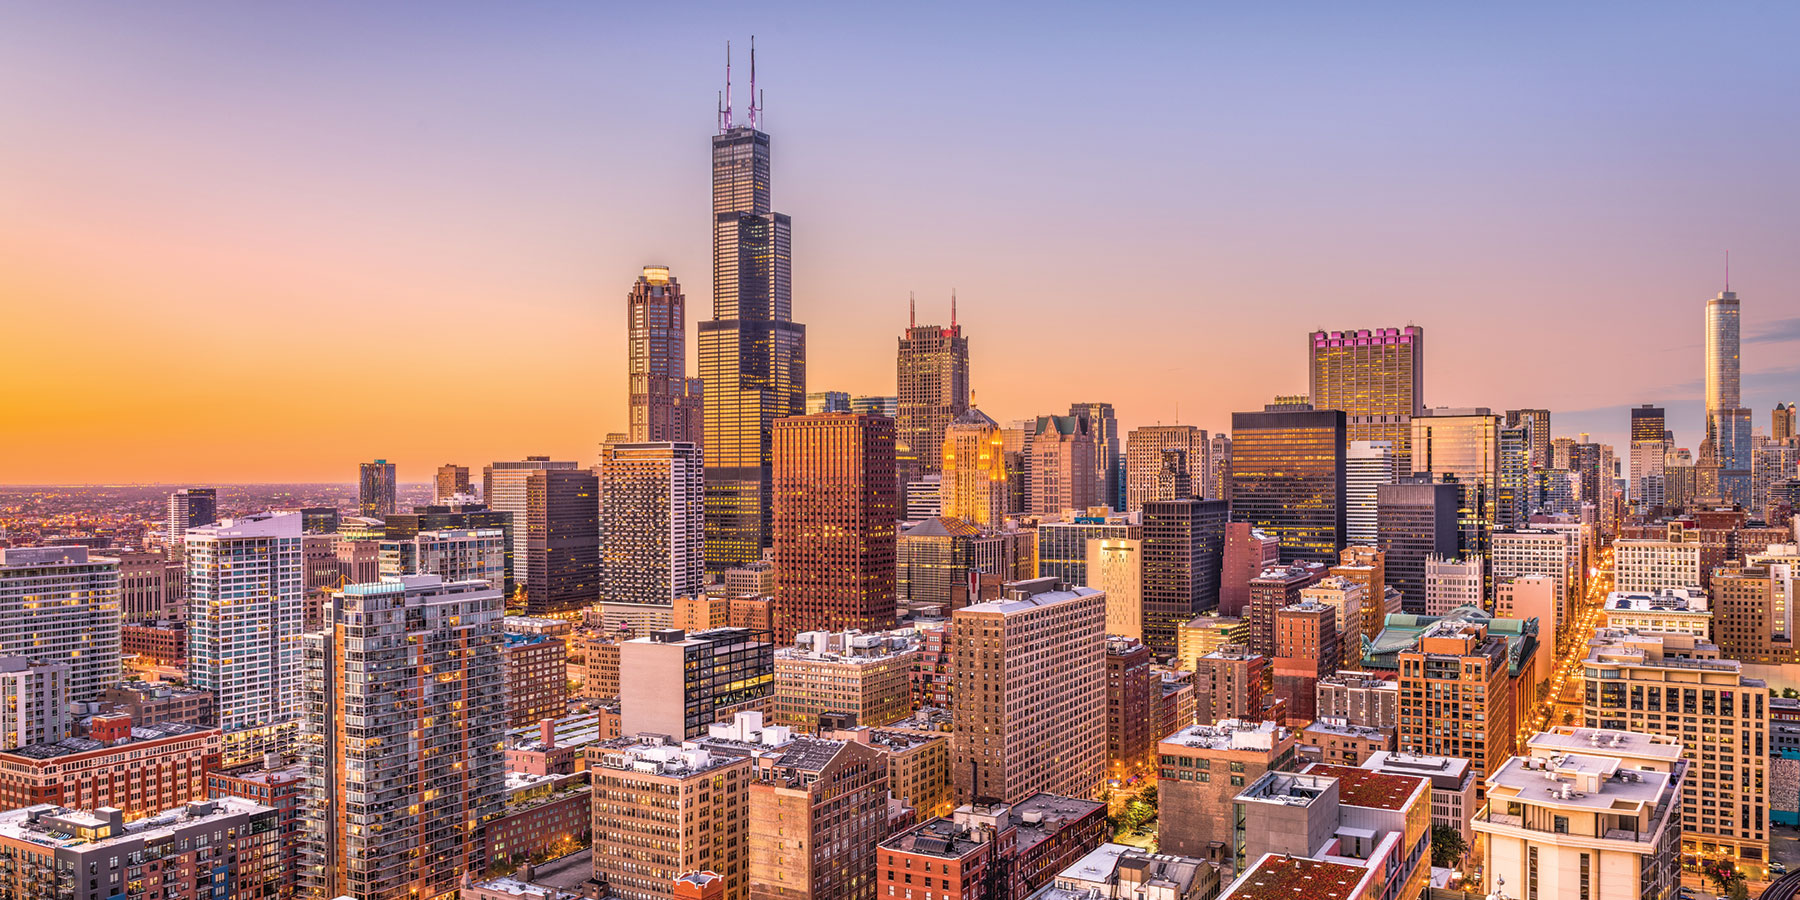 Pittcon 2020: What to Expect